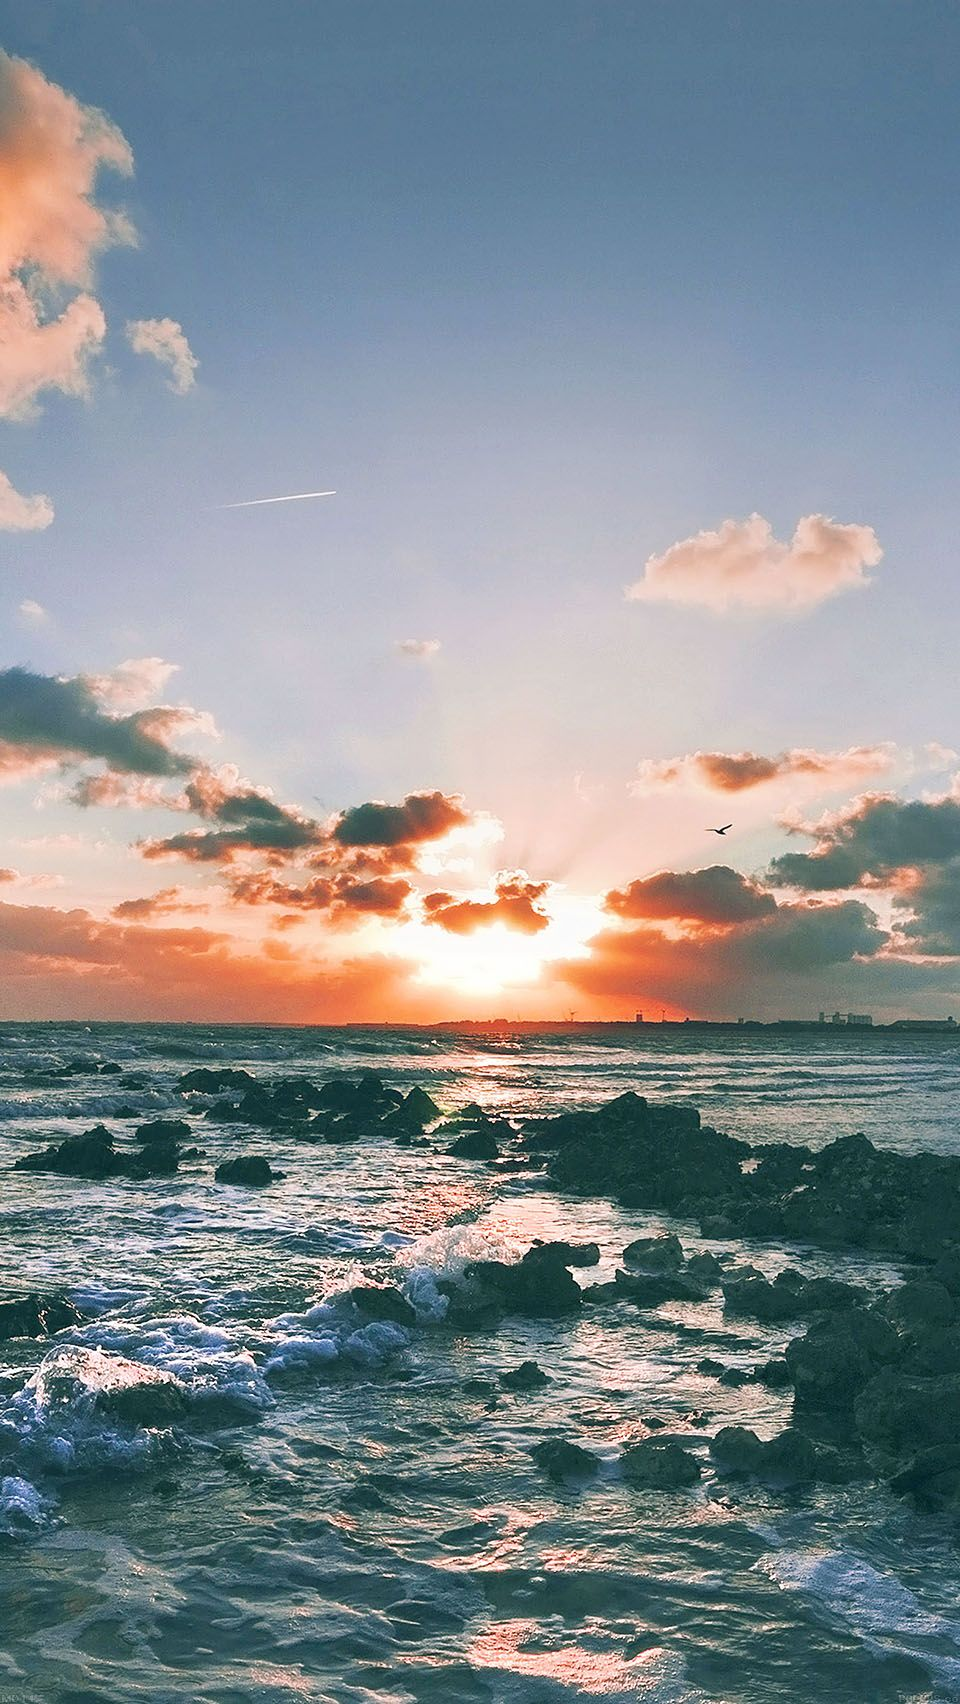 ocean and sunset wallpaper for iphone 6 wallpaper